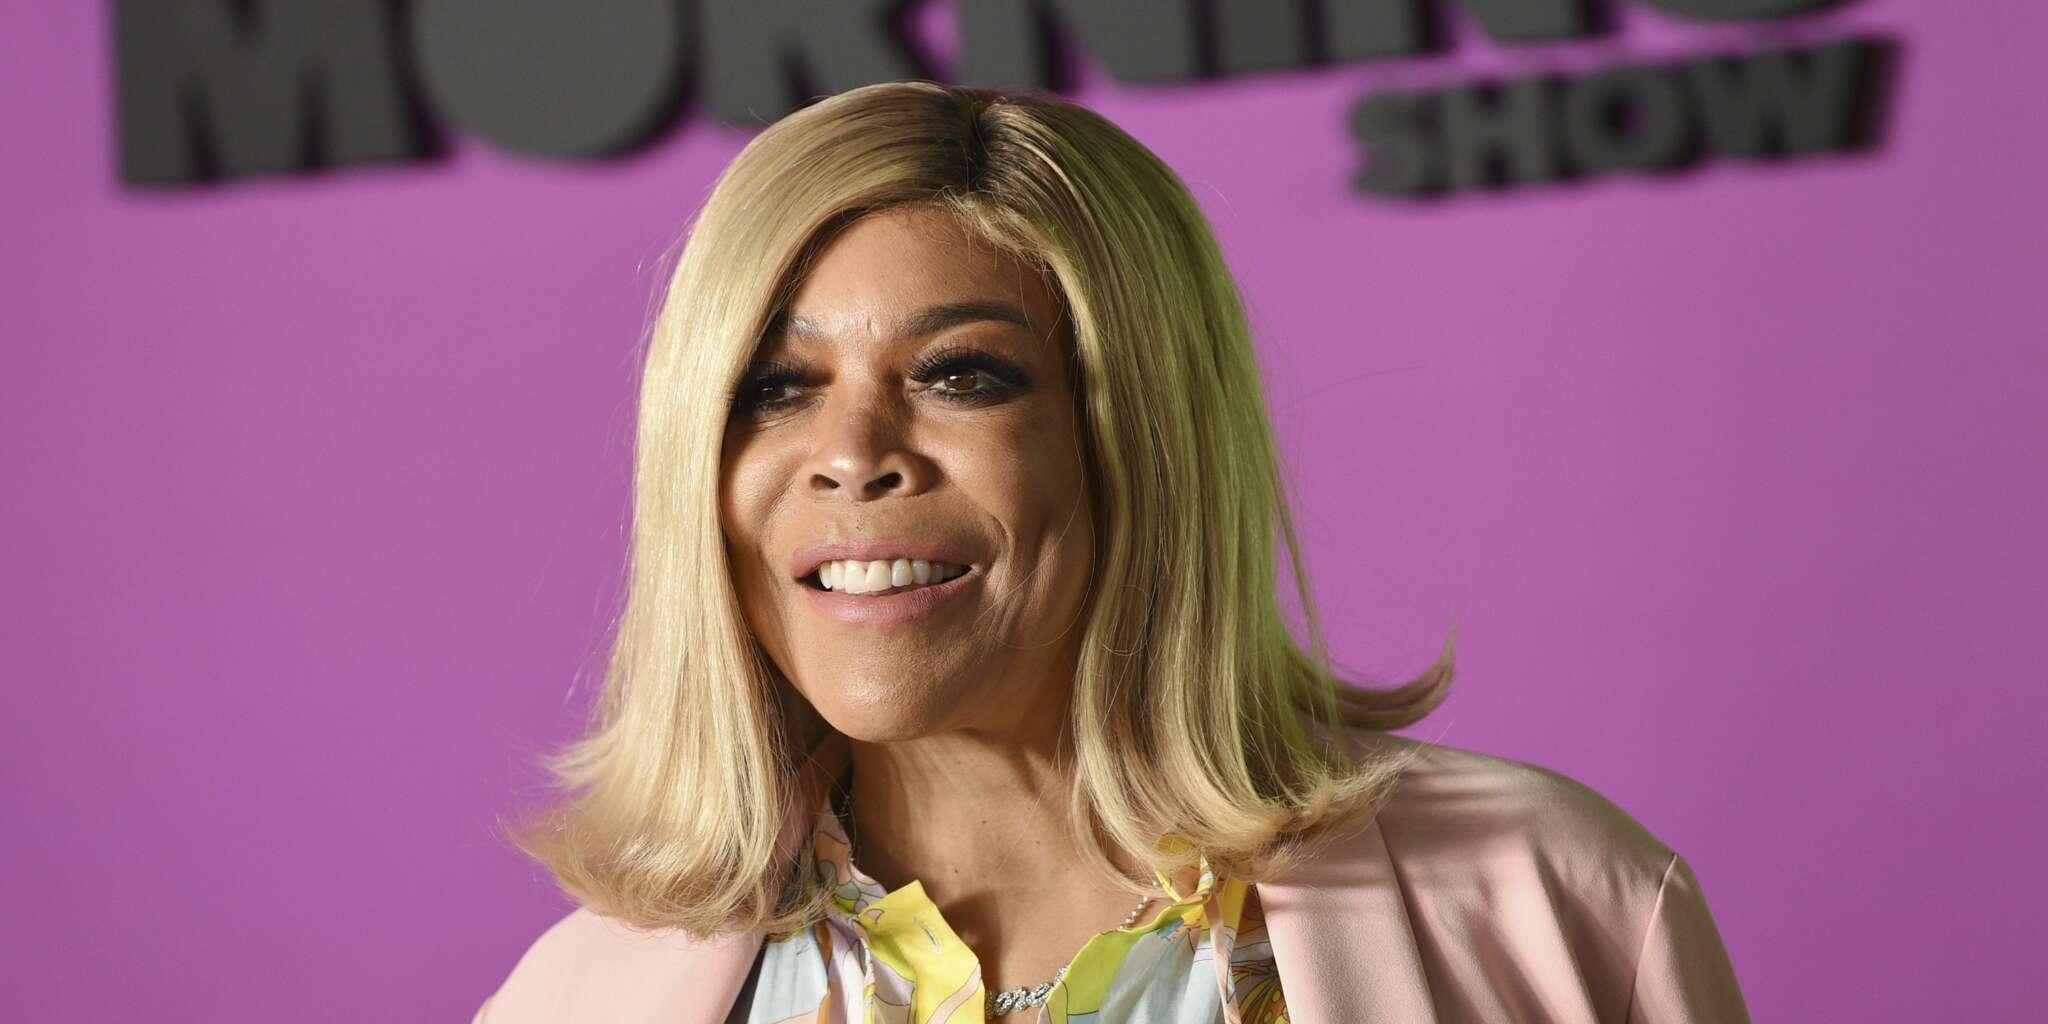 Wendy Williams Had A Shout Out For Her Ex-Husband-s Mistress And Her Daughter - See The Clip